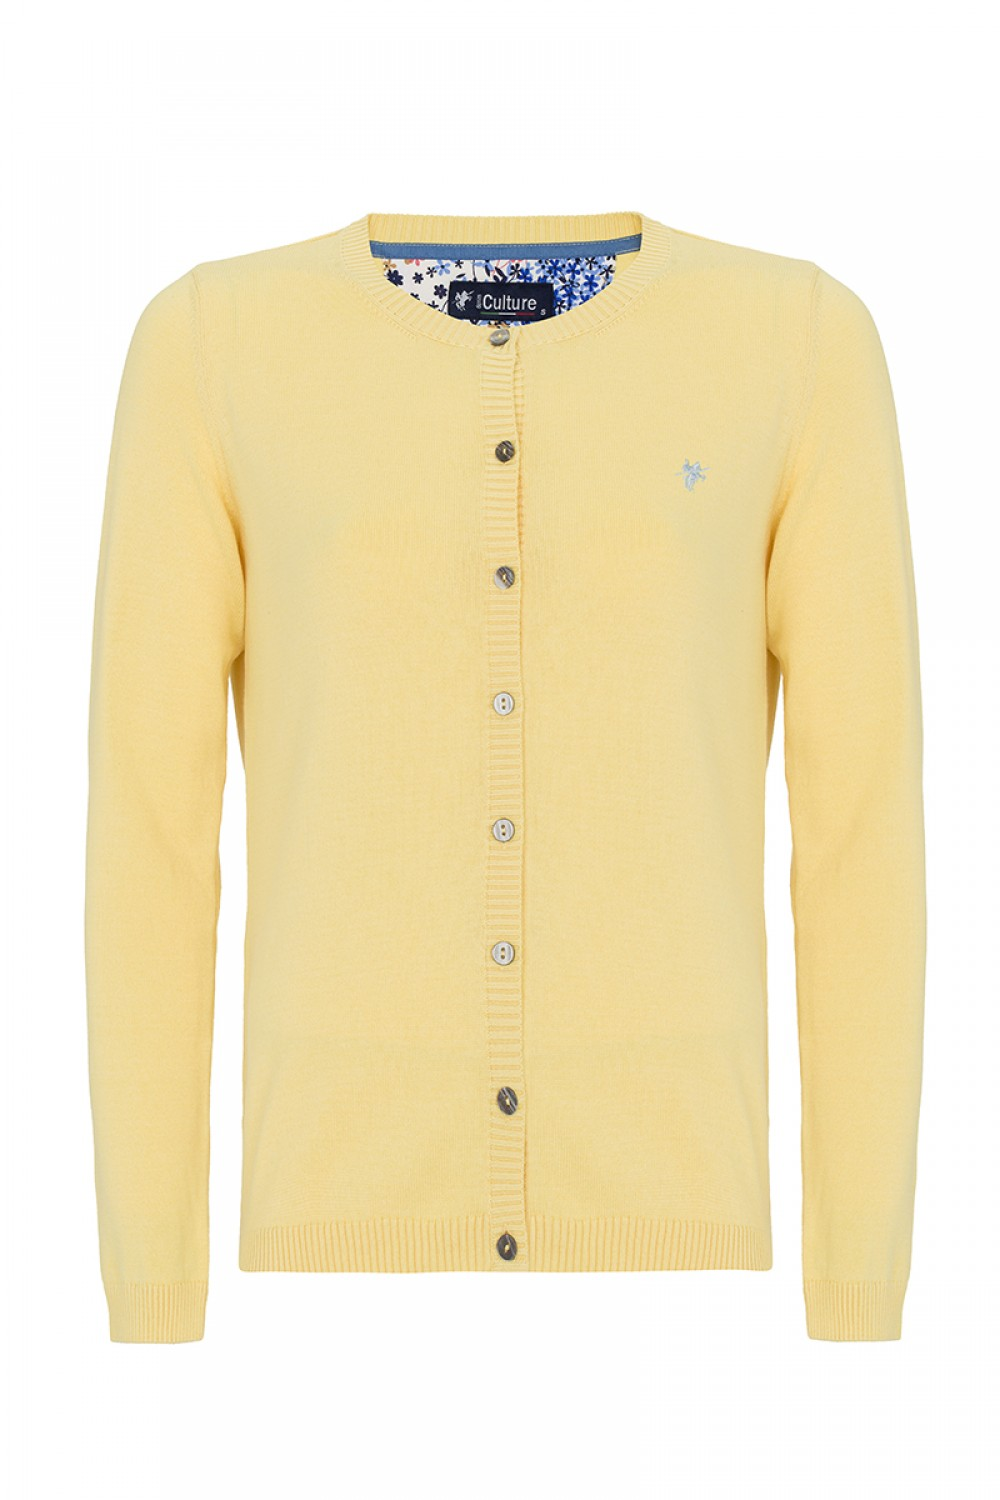 Women's Cardigan Button Crew Neck Yellow